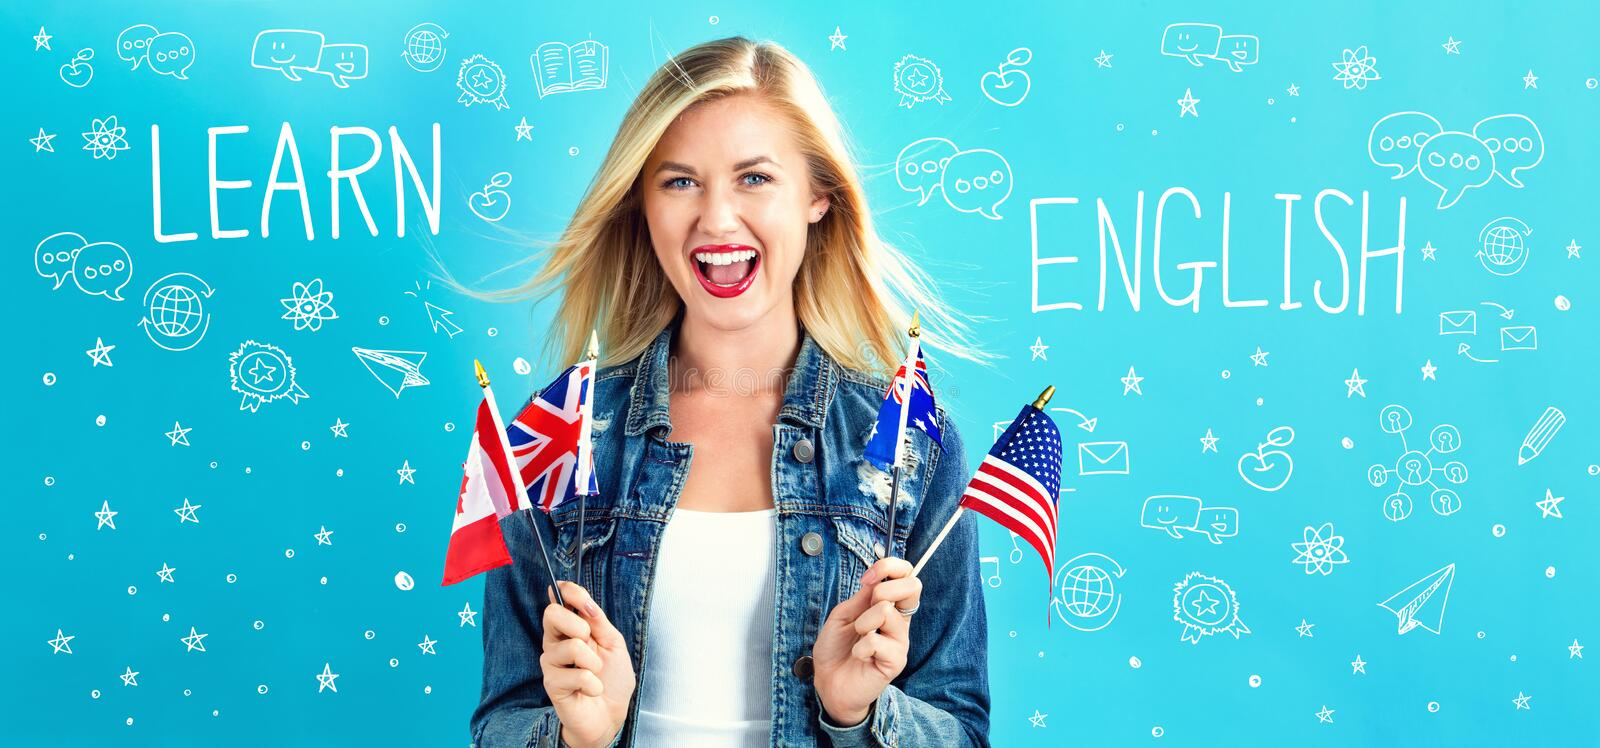 Learn English text with young woman royalty free stock image